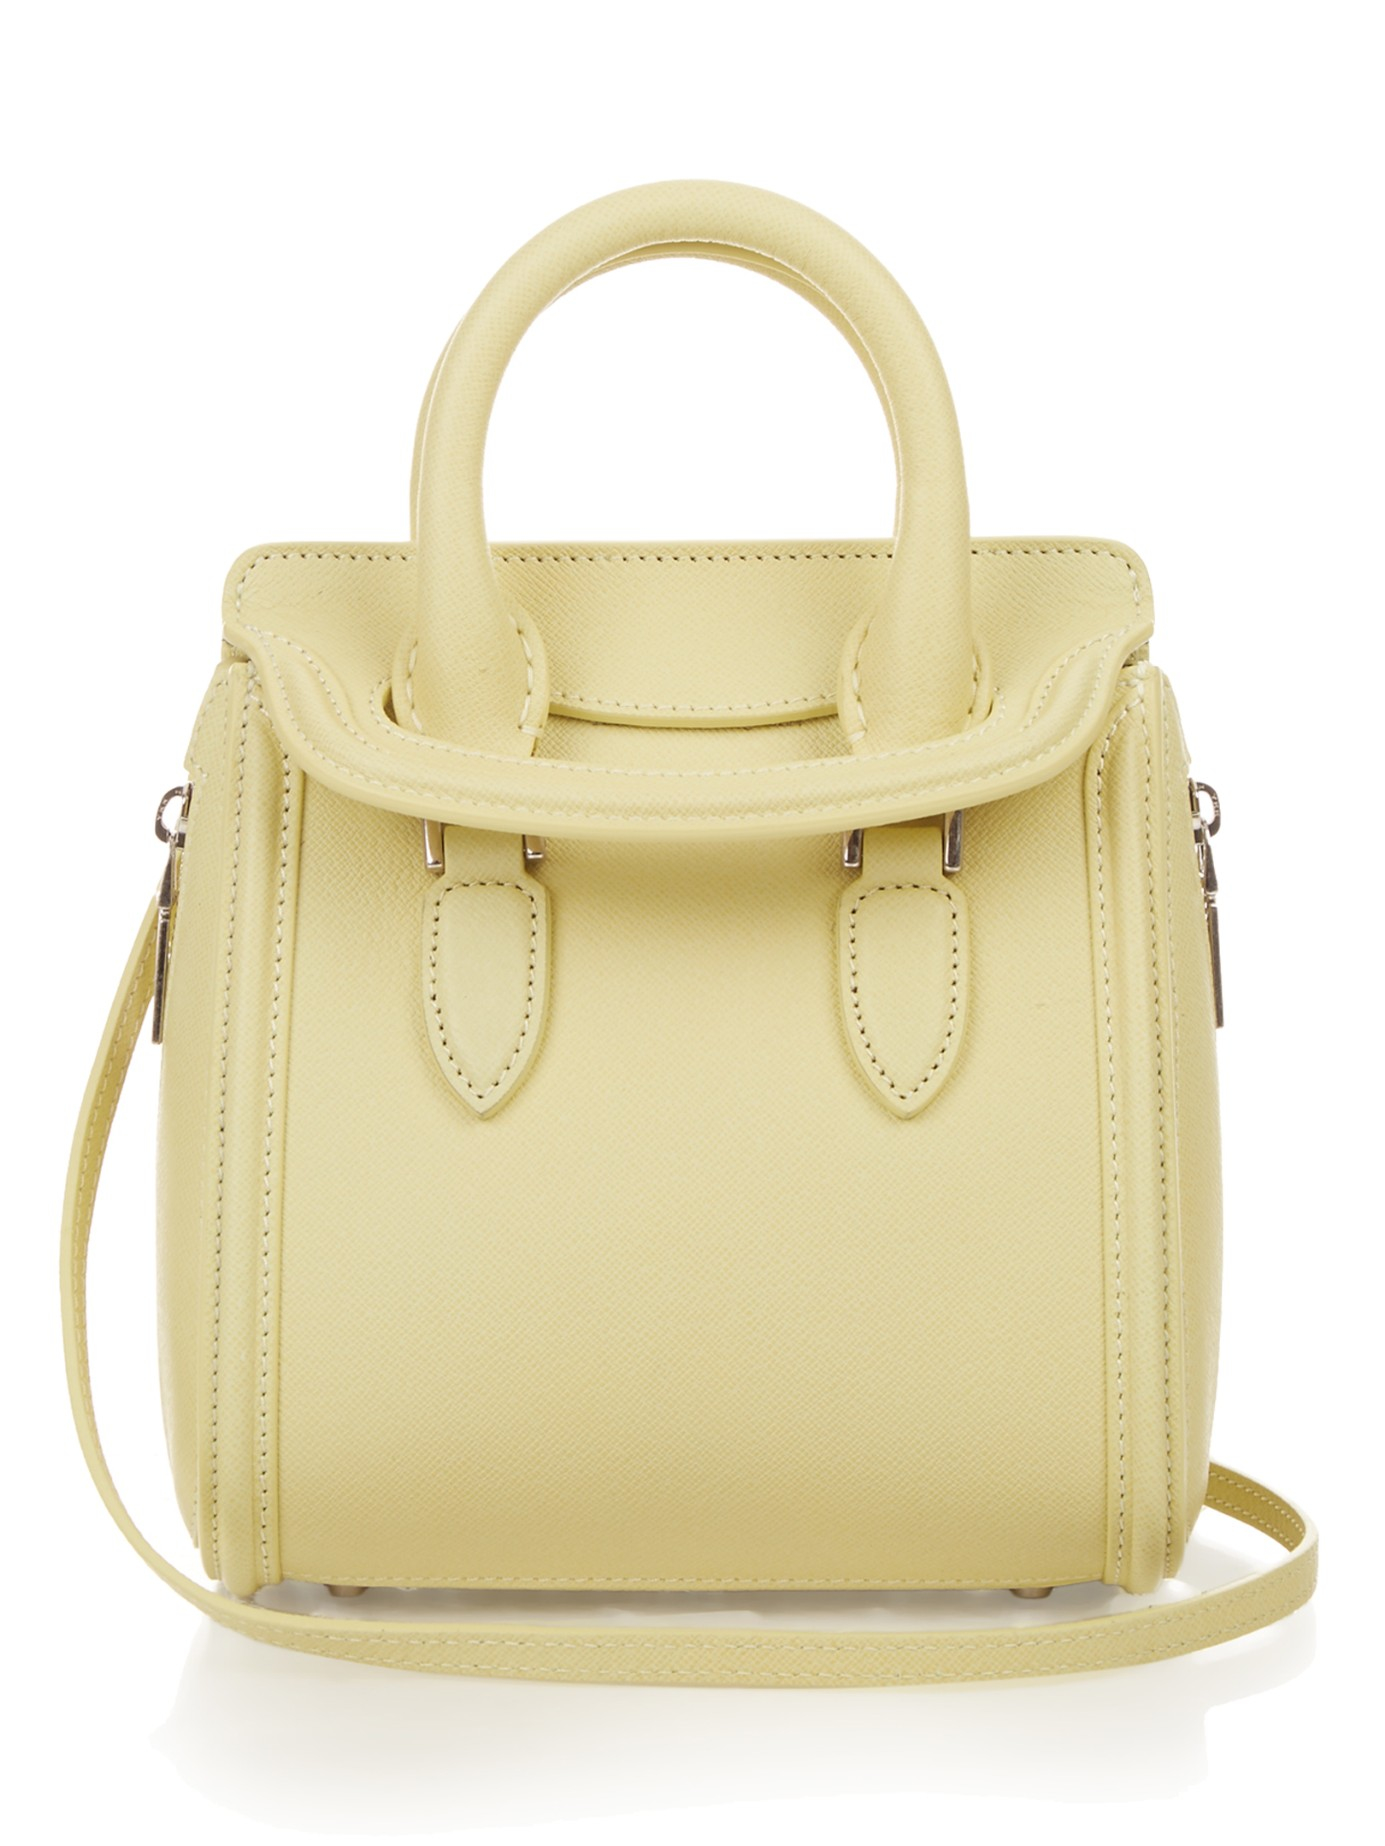 Alexander mcqueen Heroine Mini Grained-Leather Bag in ...